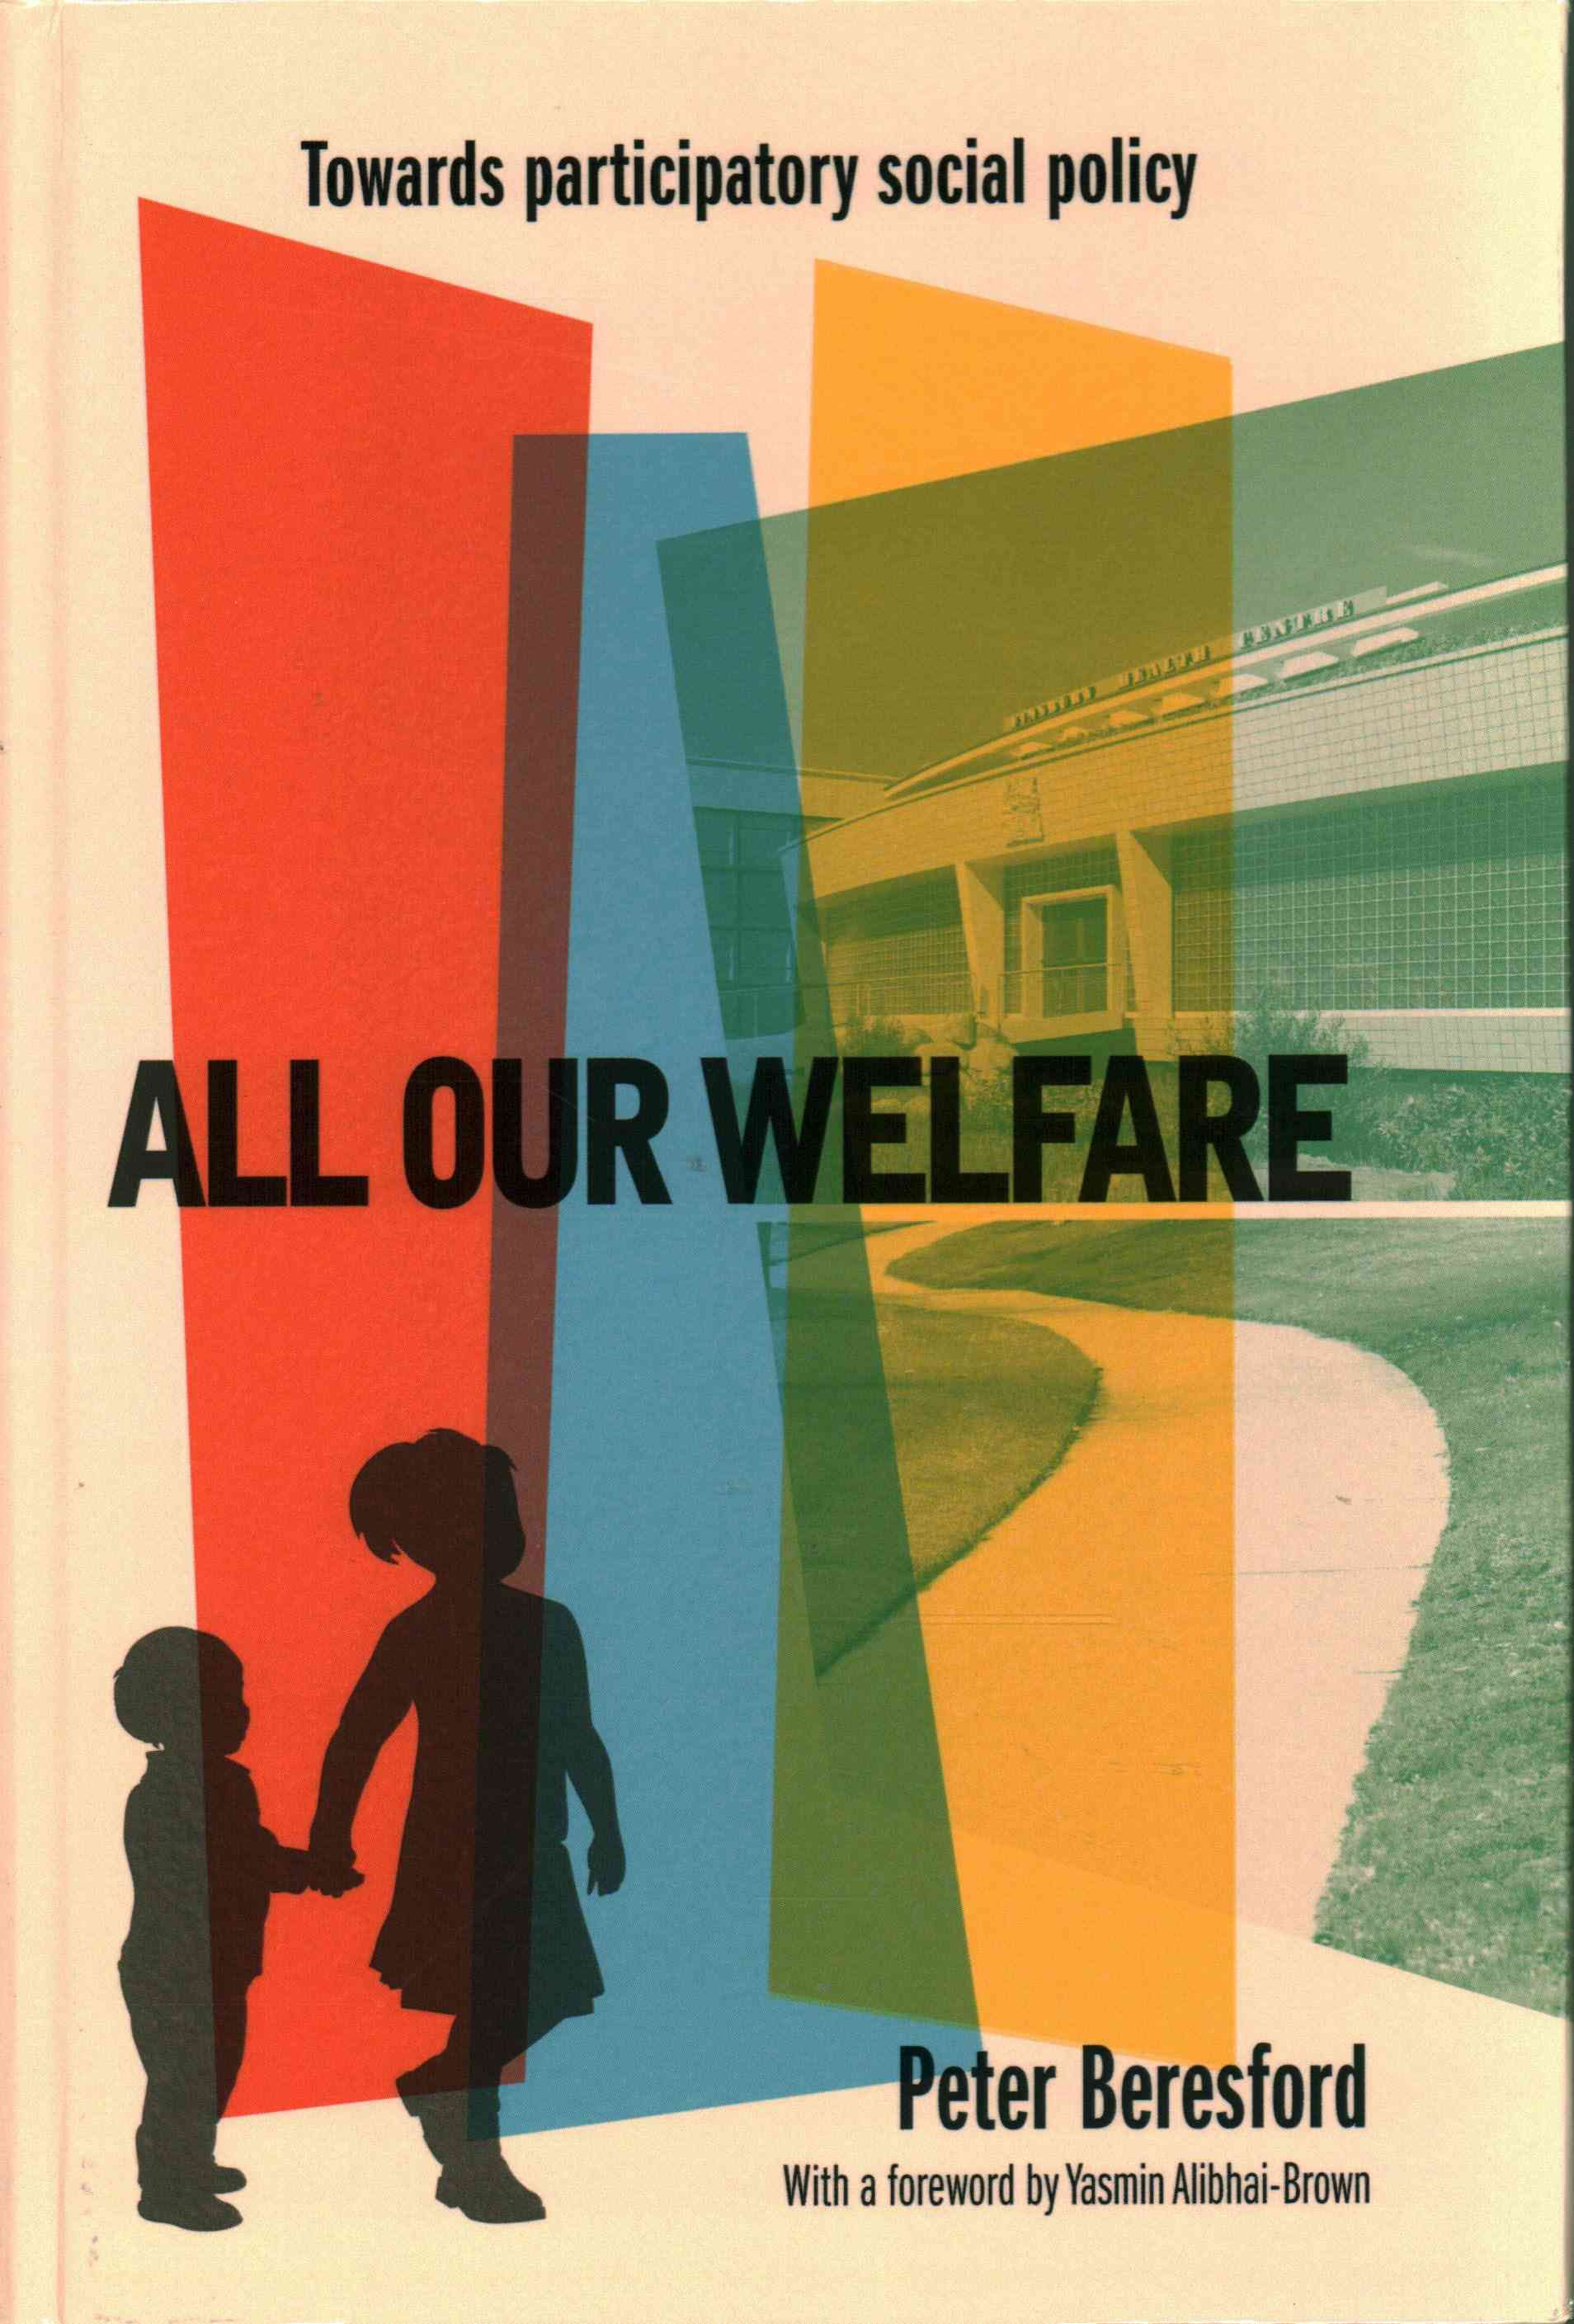 All Our Welfare: Towards Participatory Social Policy